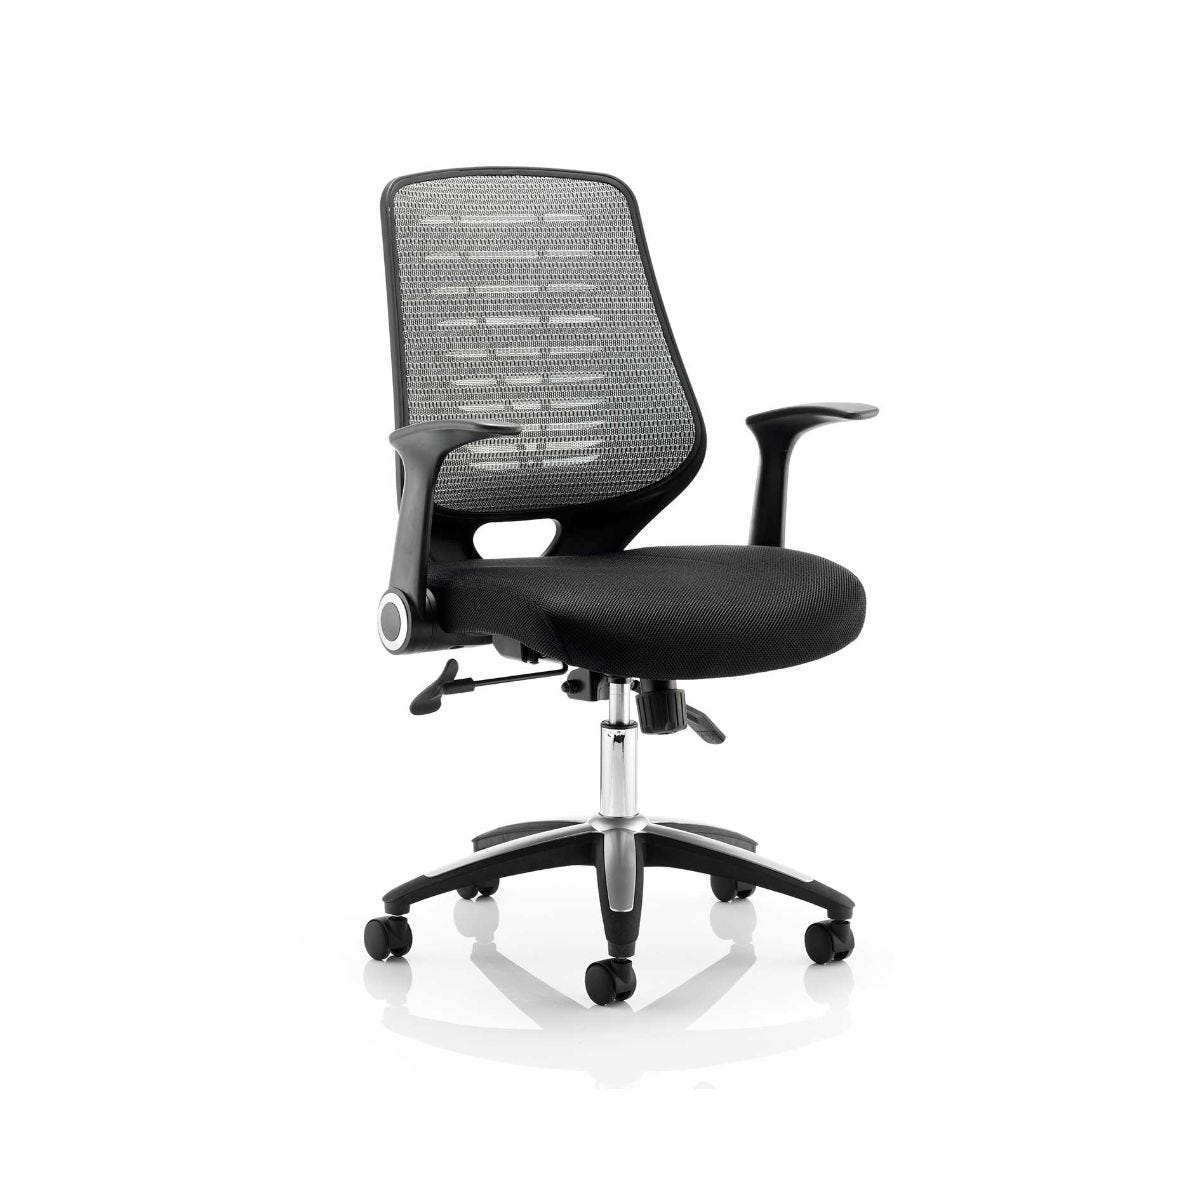 Relay Air Mesh Office Chair, Silver